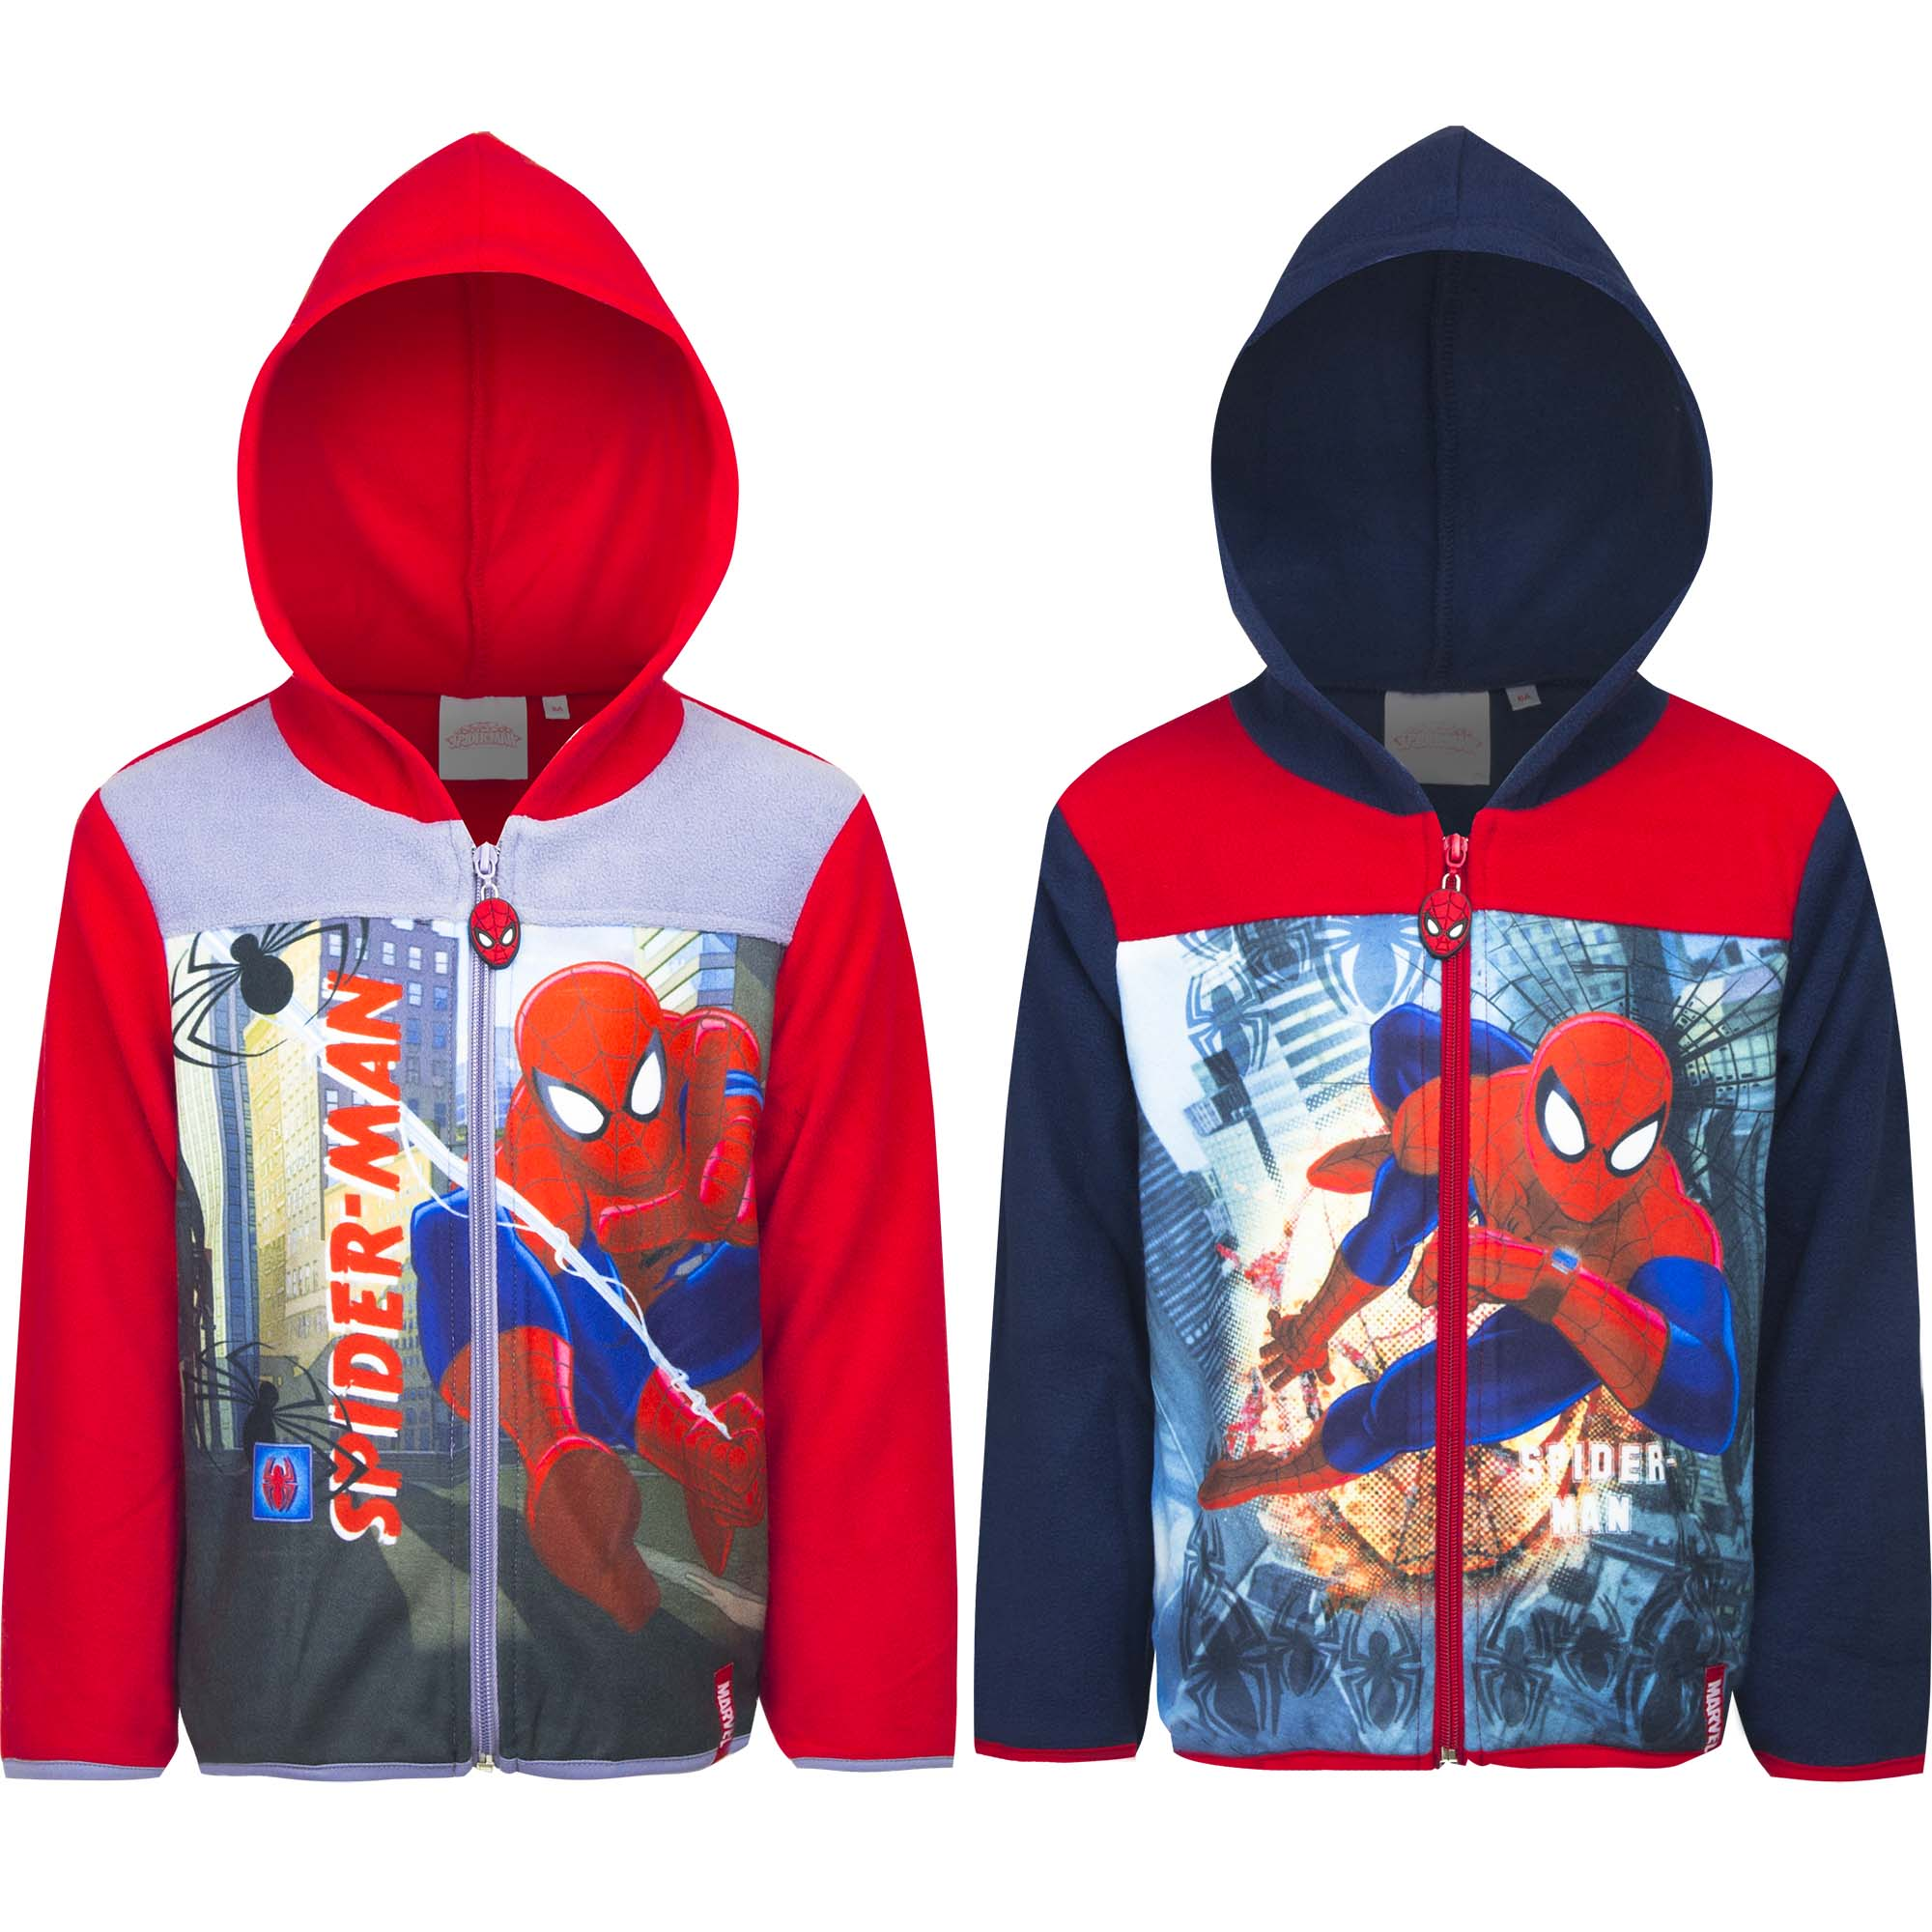 FELPA con Zip e Cappuccio  - DISNEY MARVEL SPIDERMAN - 3, 4, 6, 8 anni